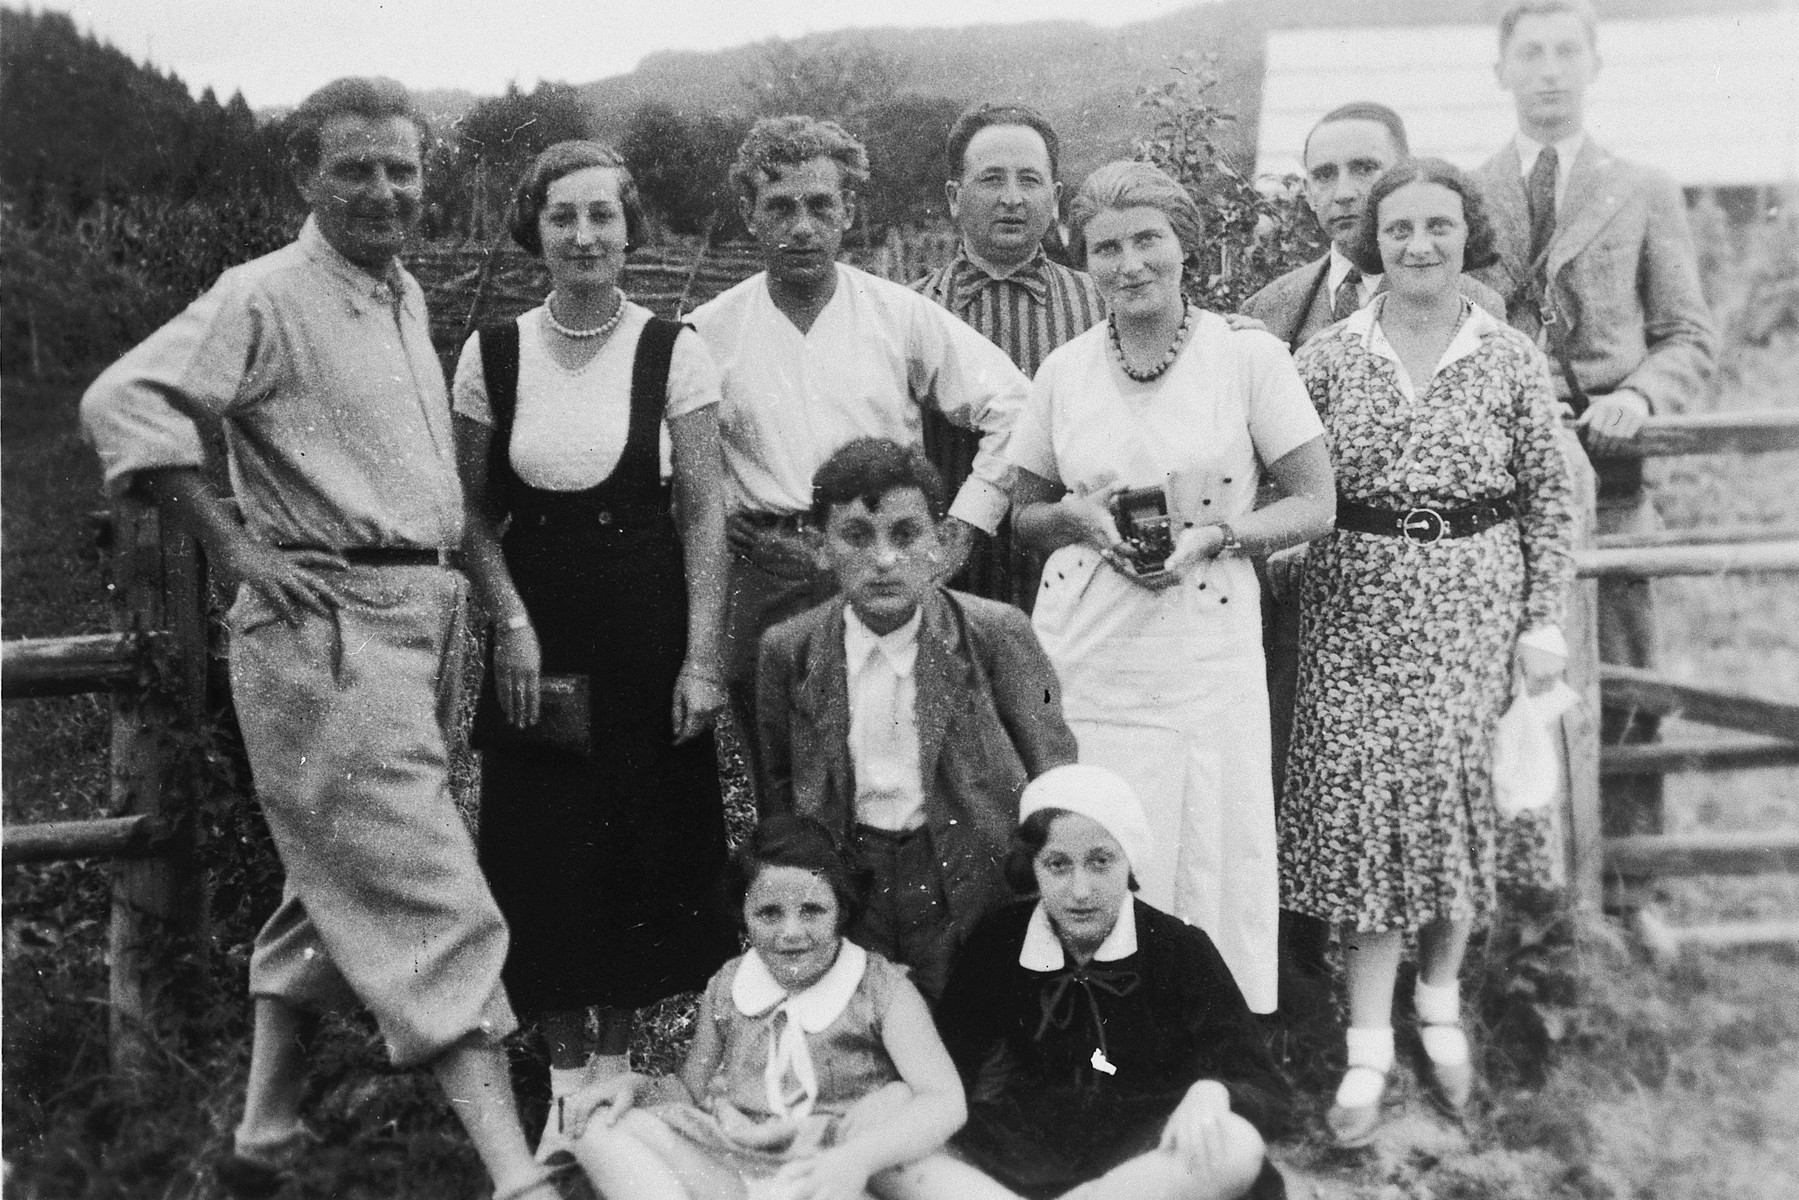 The Kimelman family poses with a group of friends while on vacation.